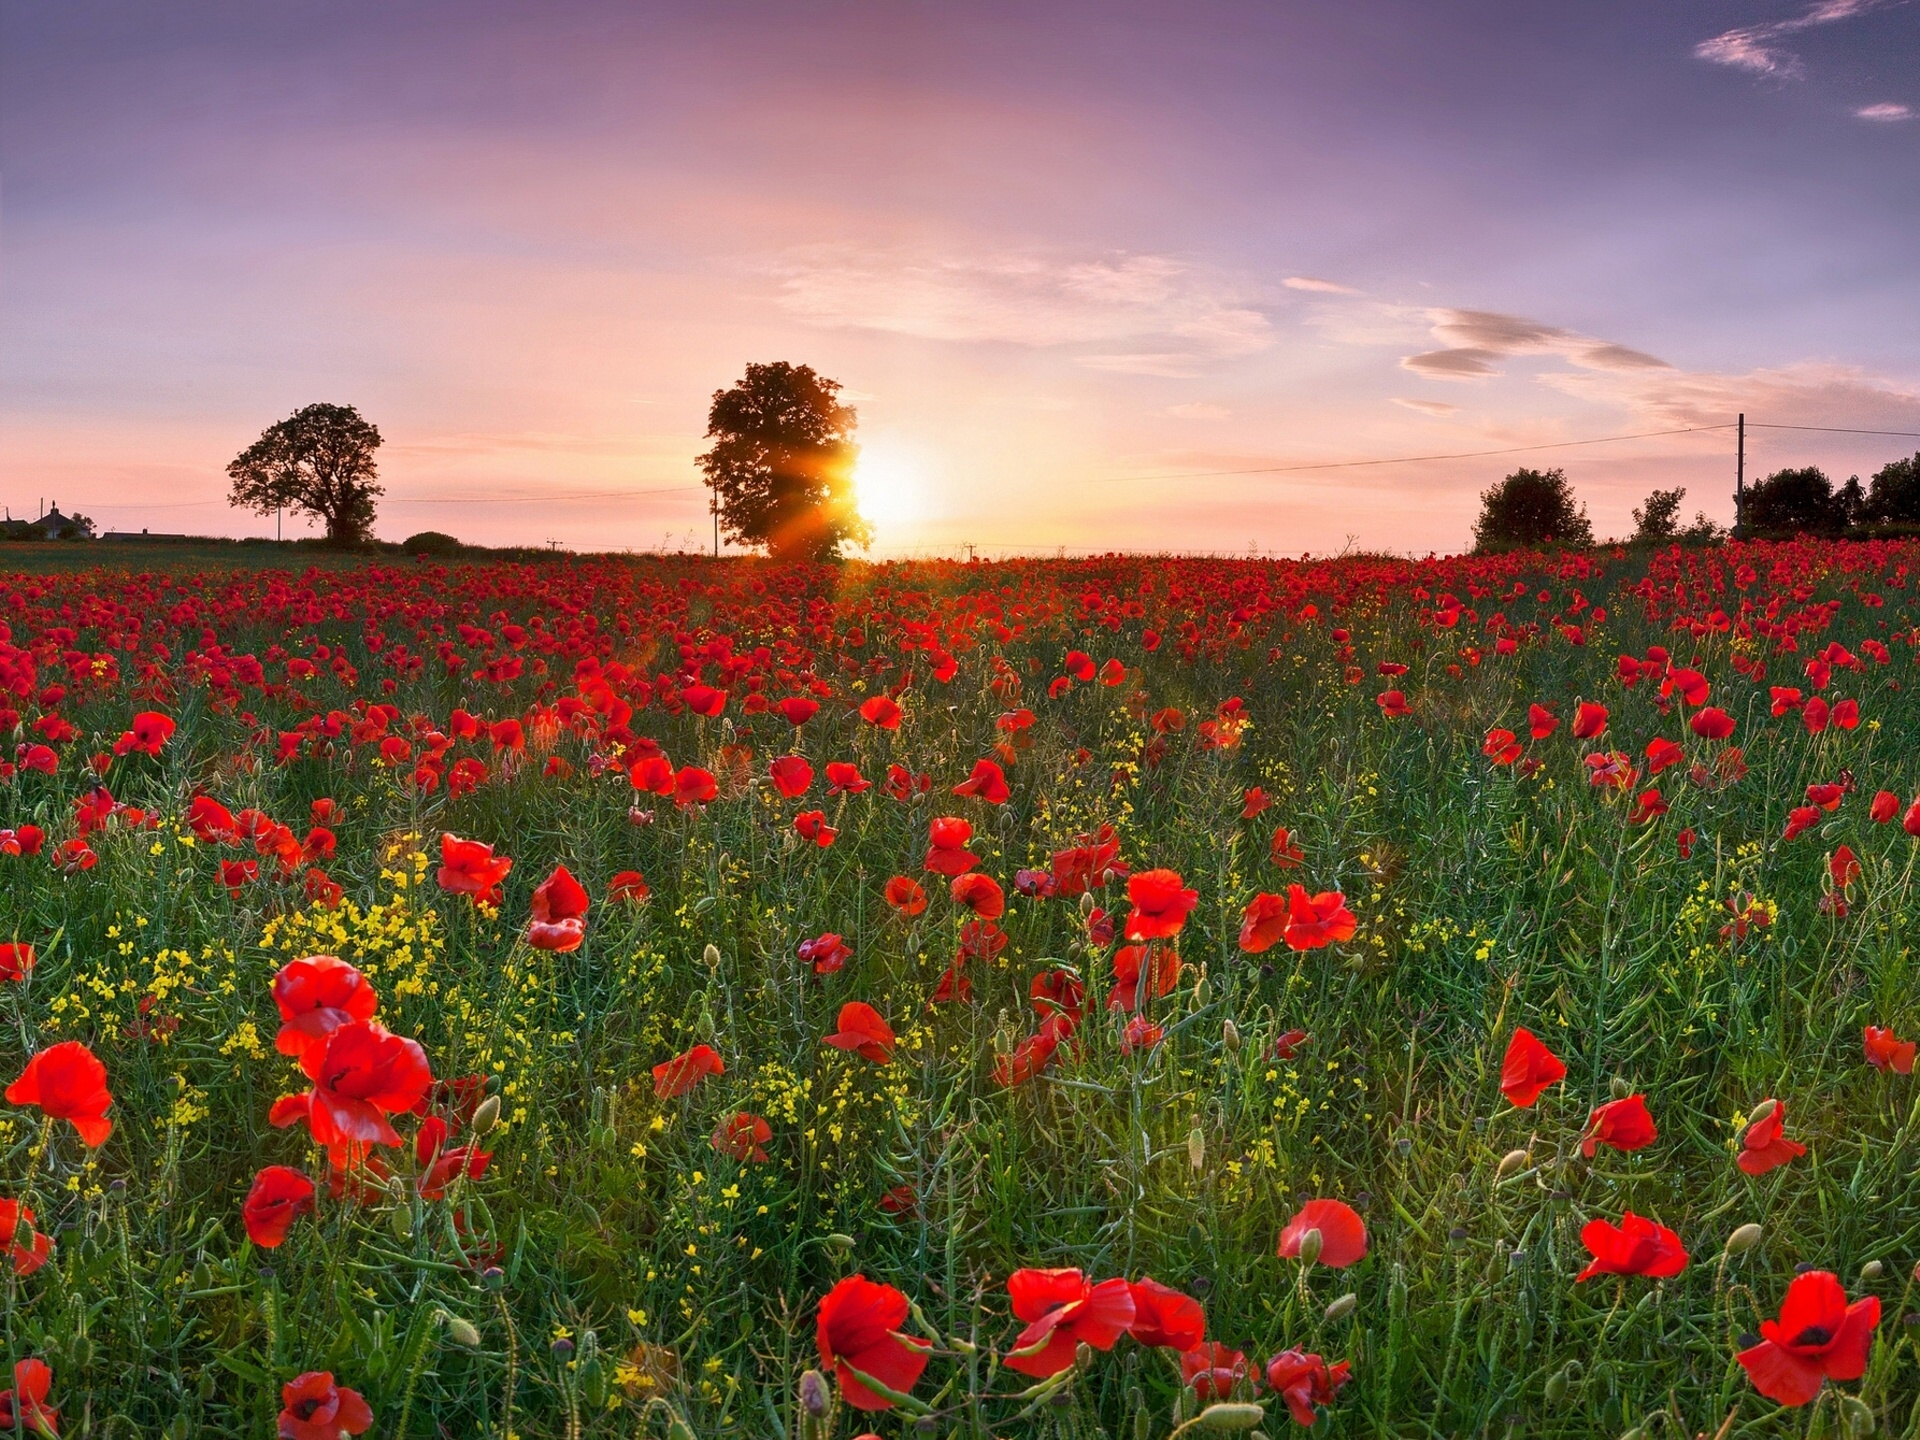 Field poppies sunset wallpaper | 1920x1440 | 117169 | WallpaperUP